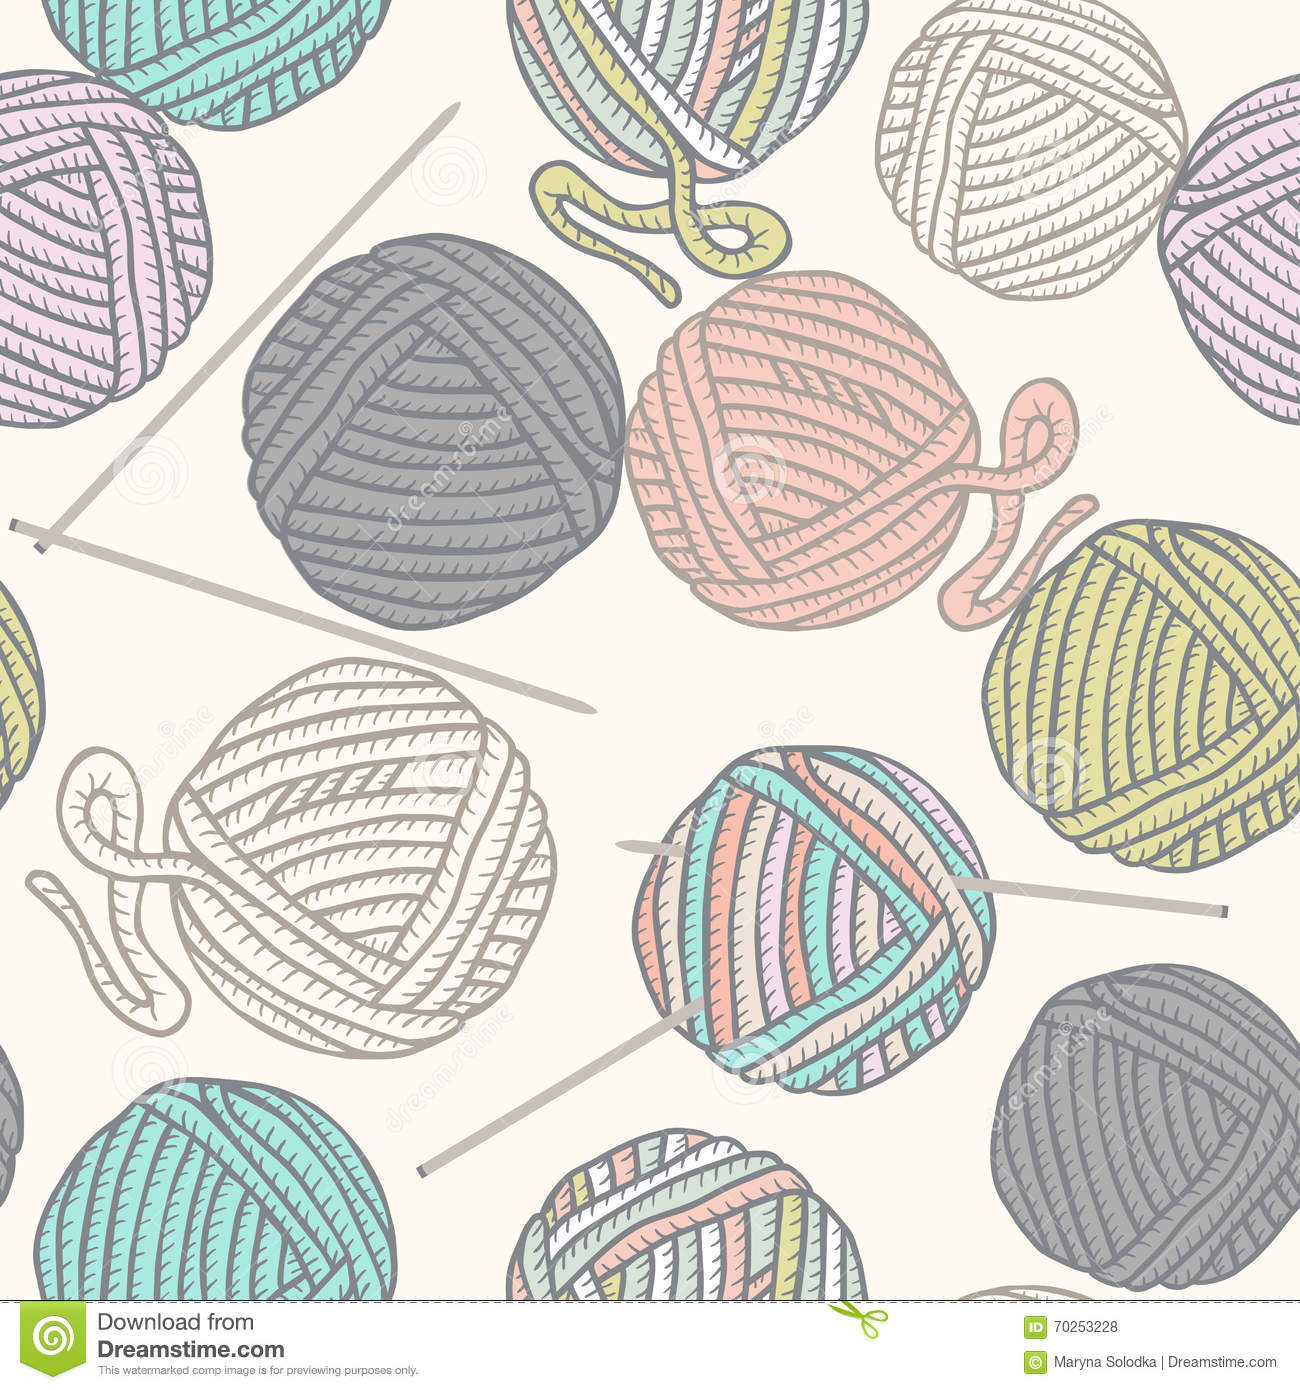 Cartoon Knitting Needles : Seamless pattern with balls of yarn and knitting needles